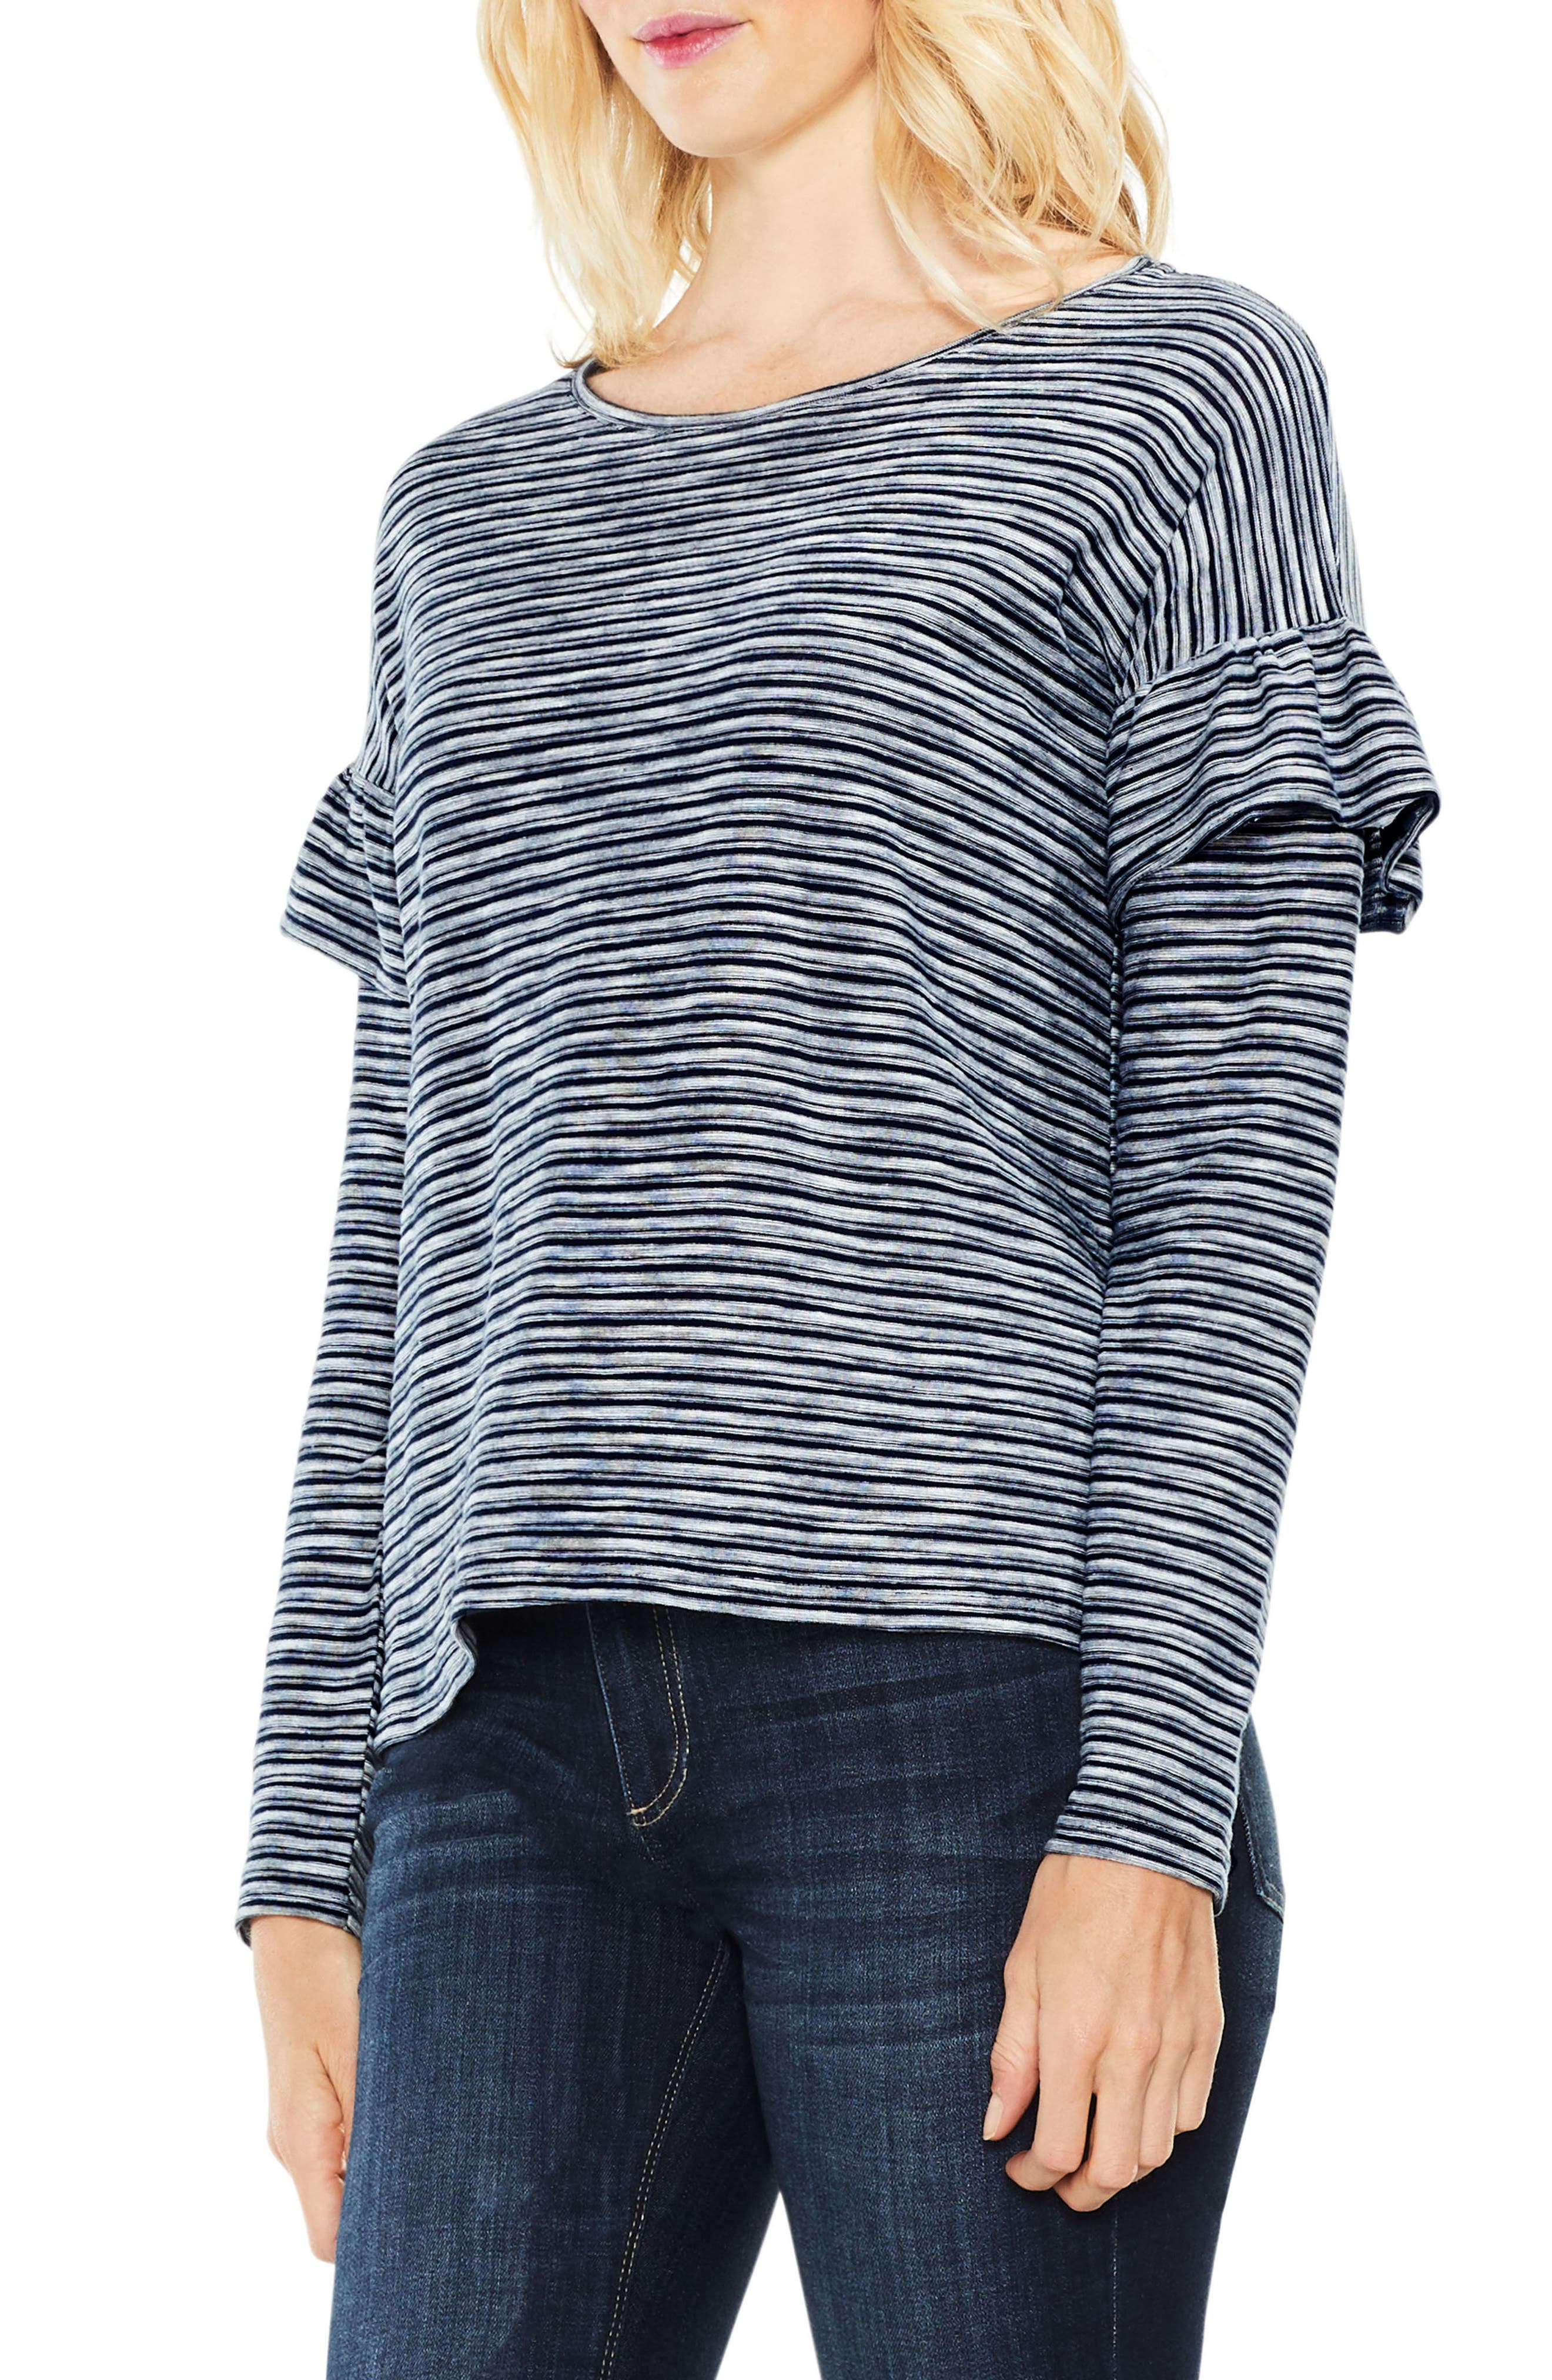 Alternate Image 1 Selected - Two by Vince Camuto Long Sleeve Ruffle Shoulder Top